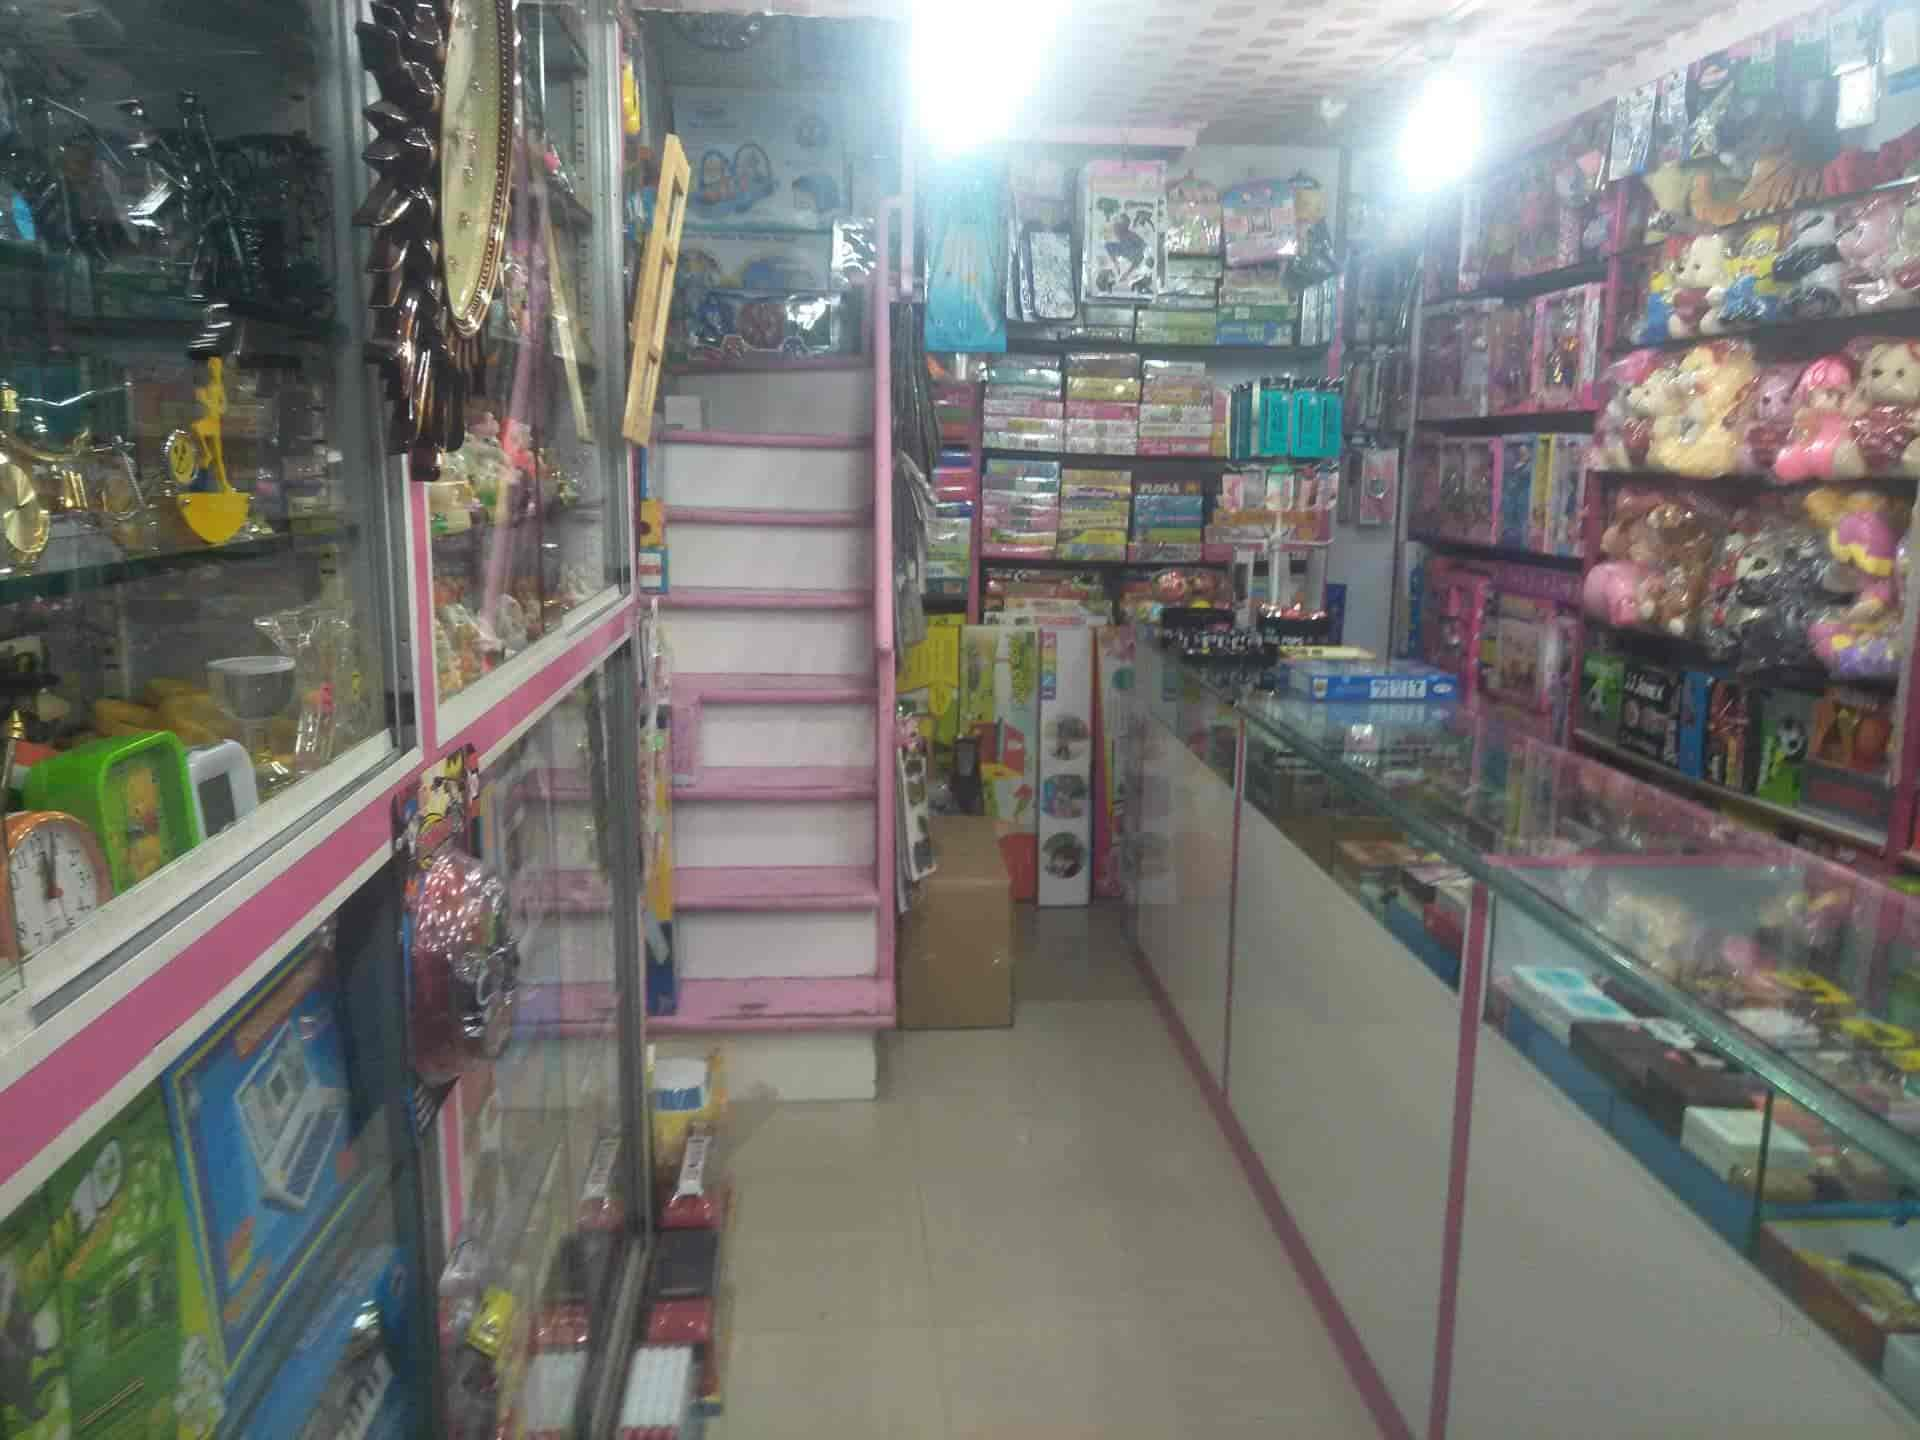 Apple Gift Shop, Wakad - Gift Shops in Pune - Justdial